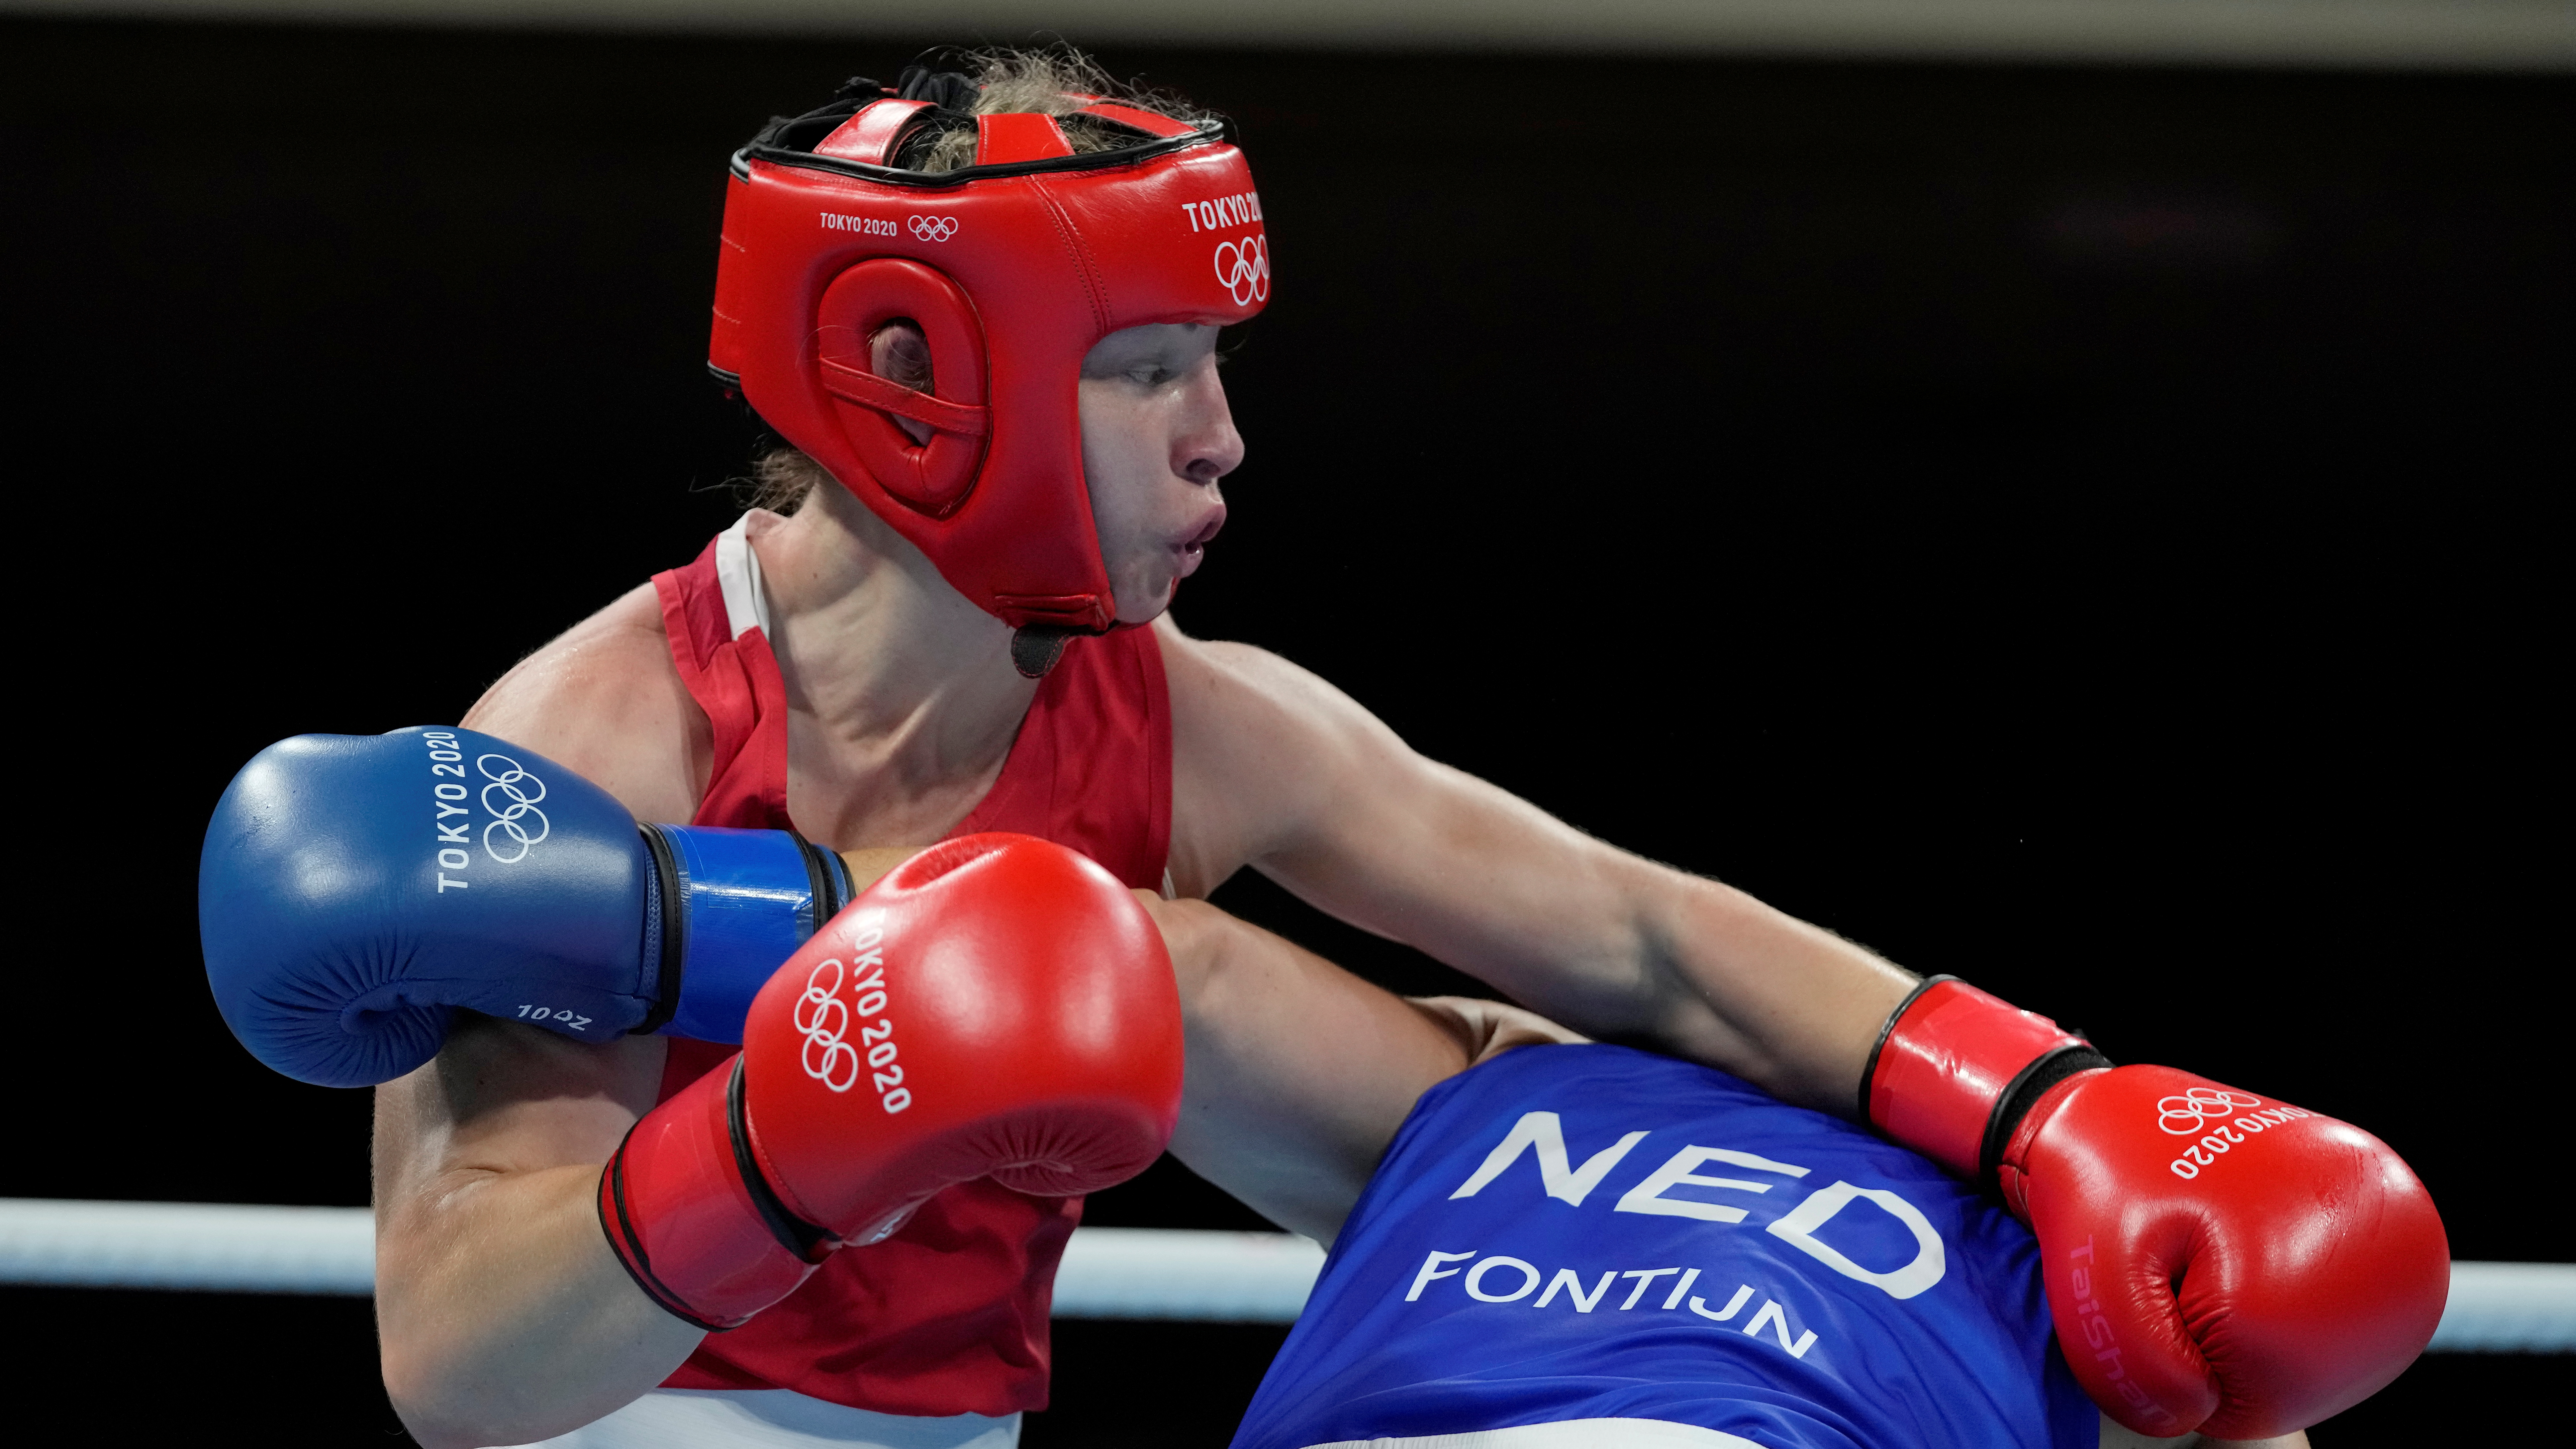 Tokyo 2020 Olympics - Boxing - Women's Middleweight - Semifinal - Kokugikan Arena - Tokyo, Japan - August 6, 2021. Lauren Price of Britain in action against Nouchka Fontijn of the Netherlands REUTERS/Themba Hadebe